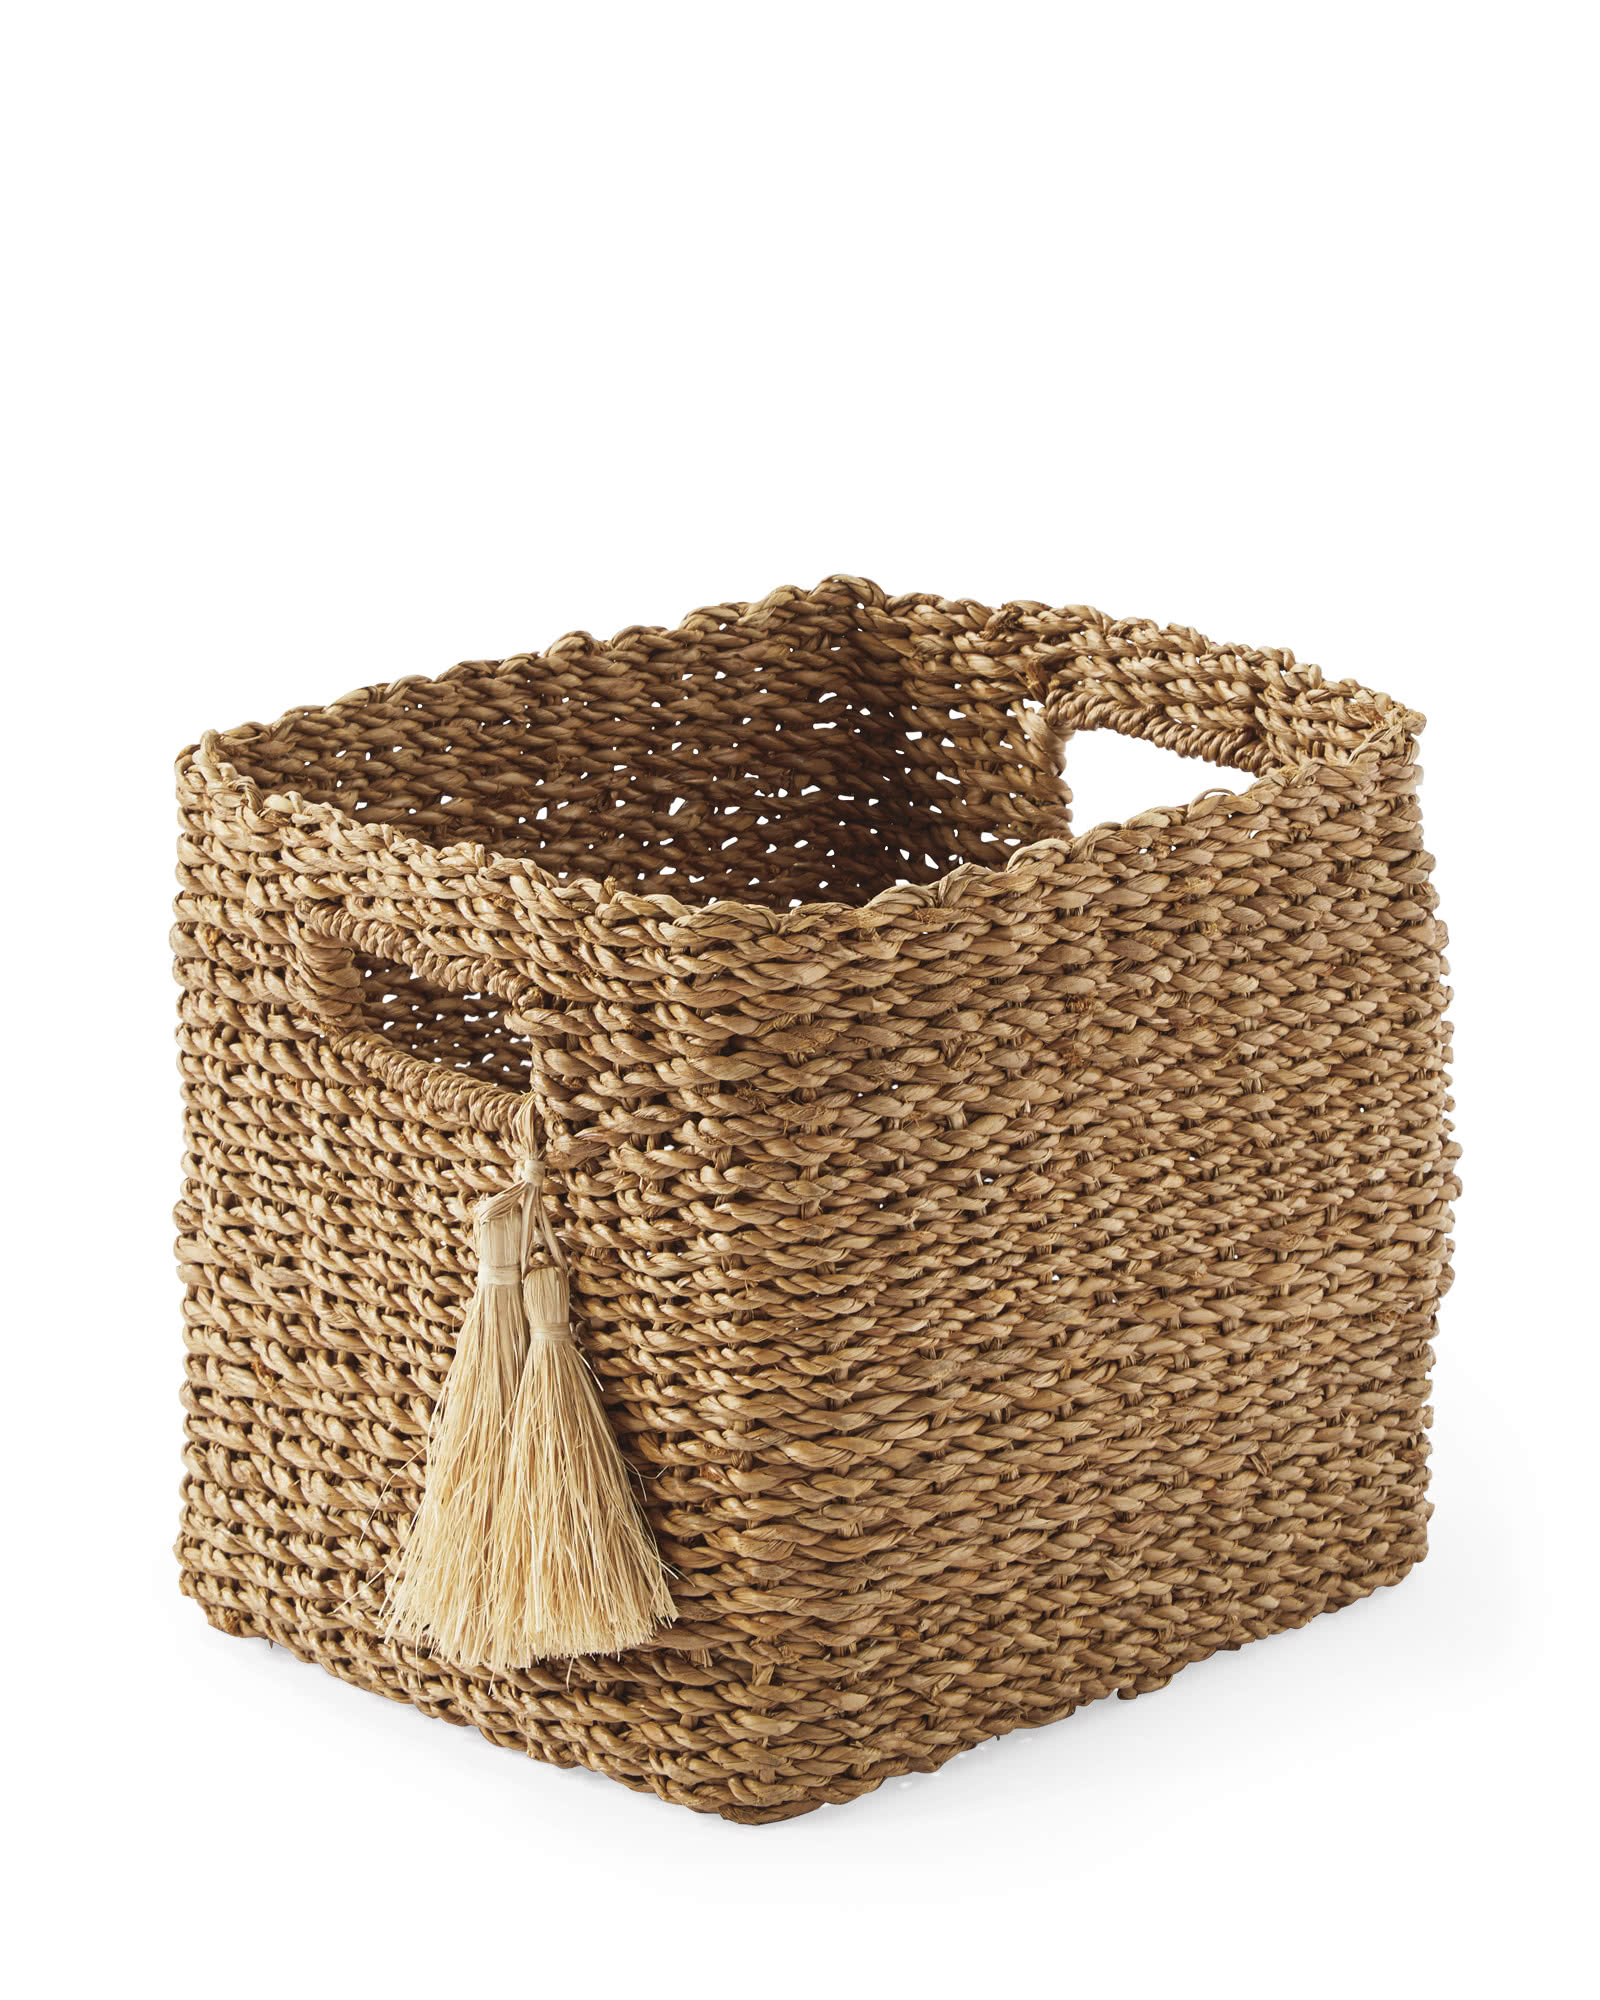 Big Sur Baskets, Natural